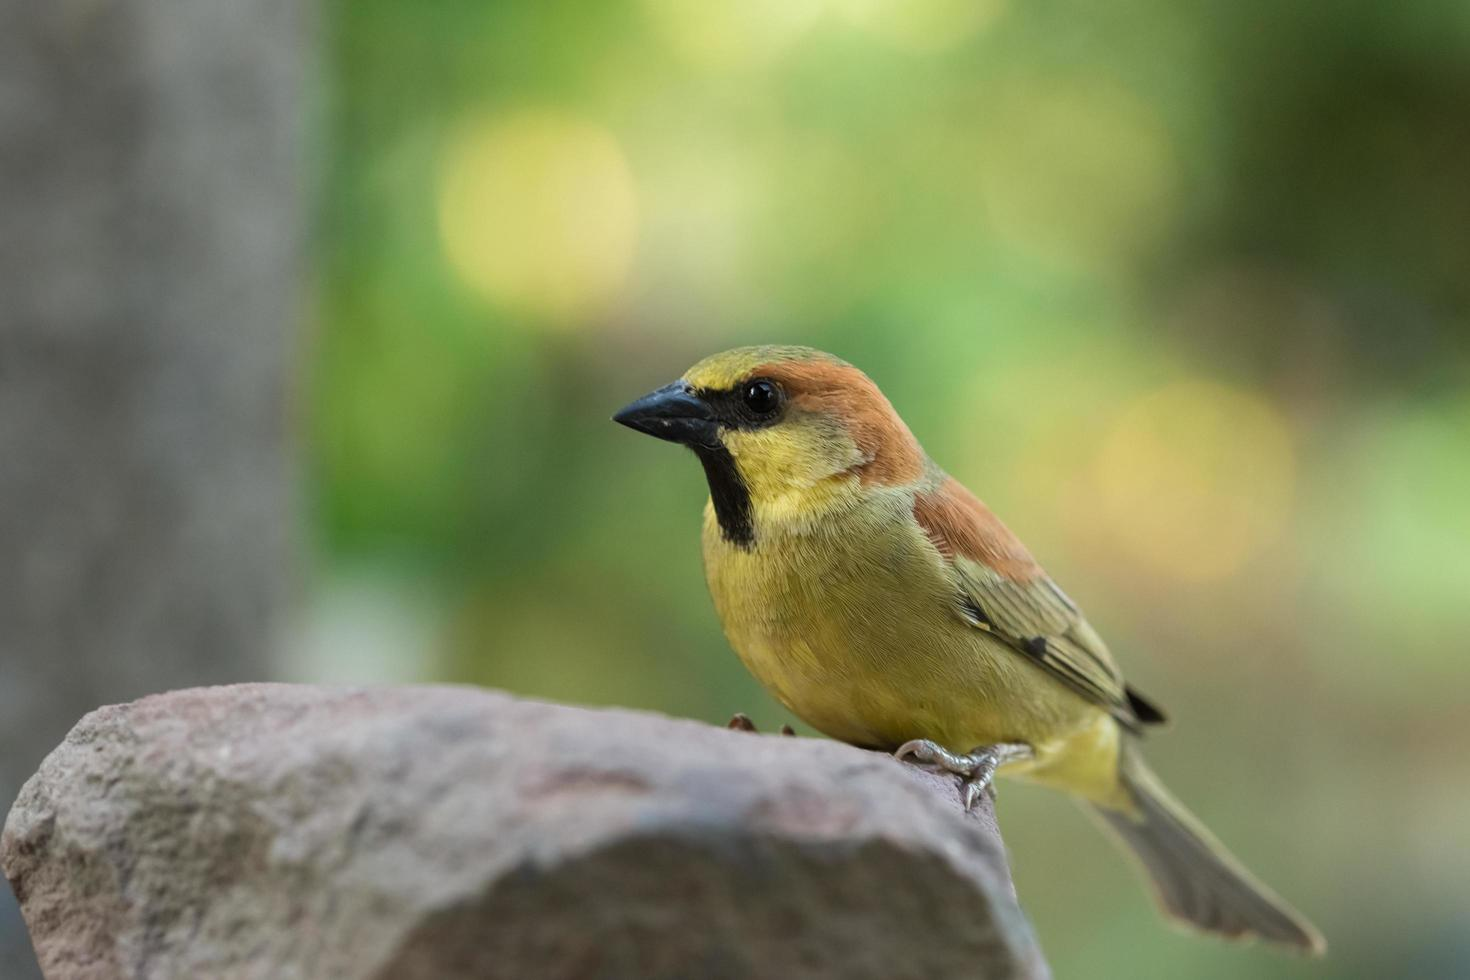 Colorful bird perched on rock photo